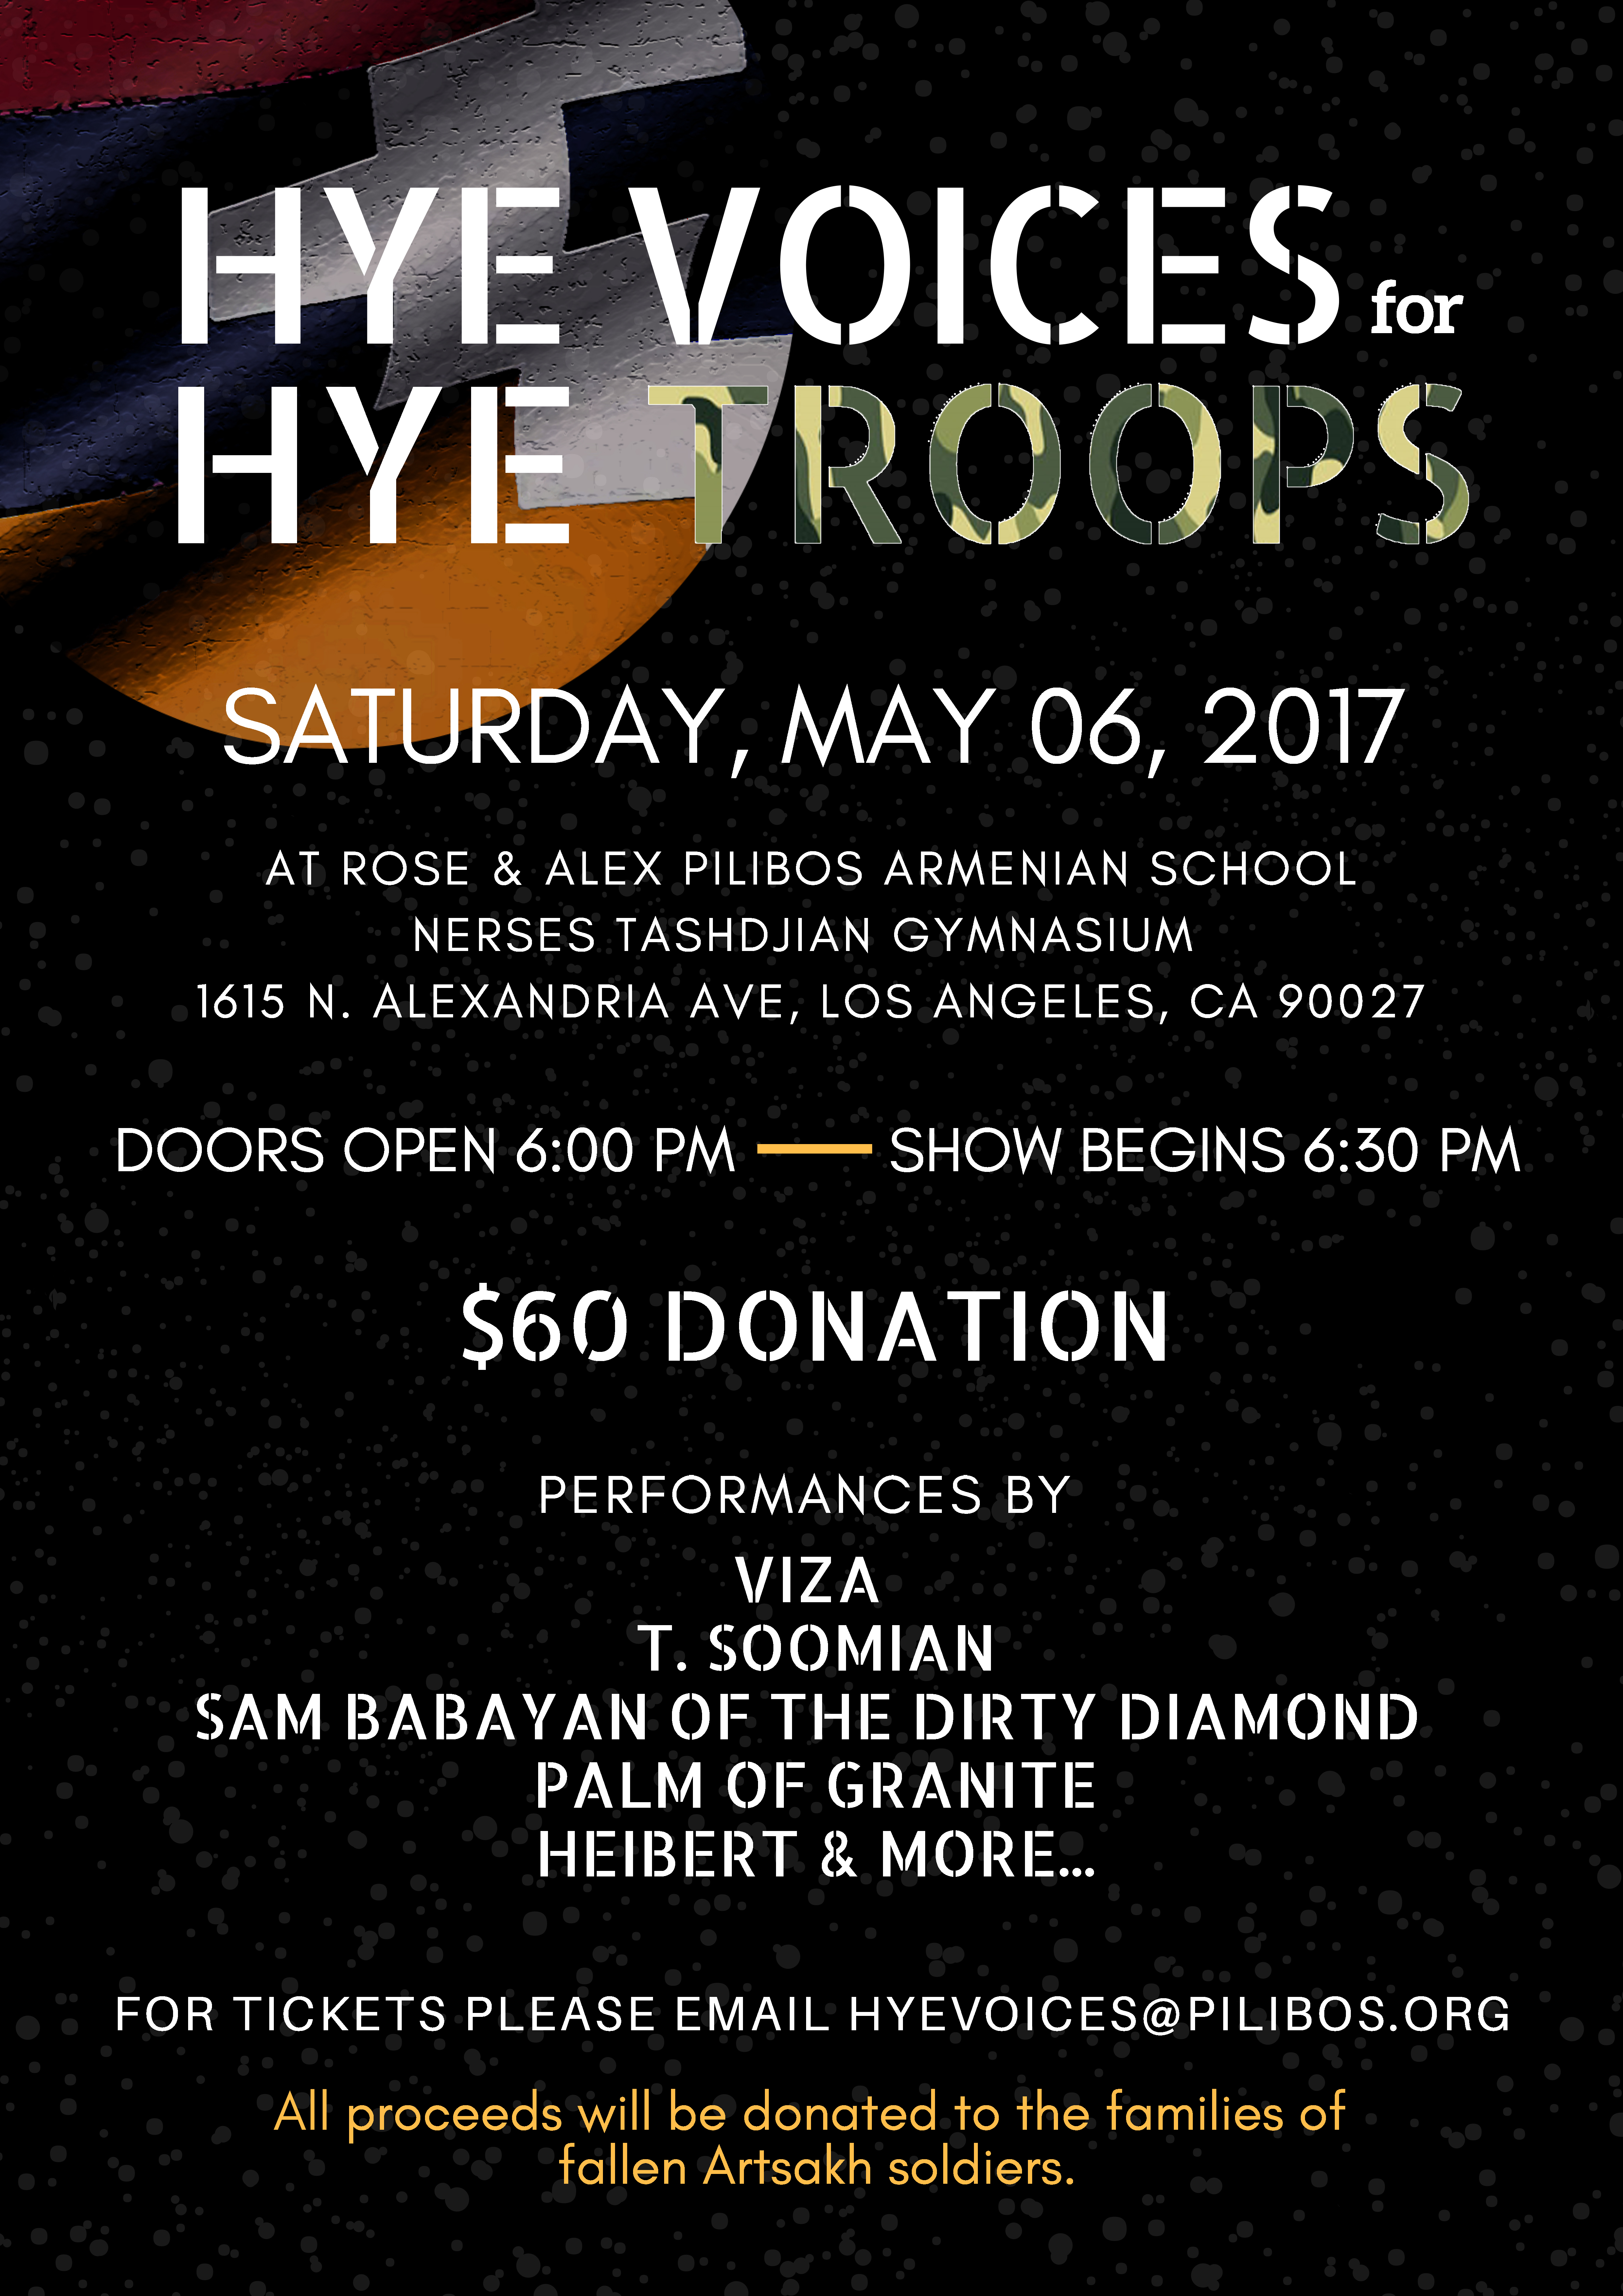 Pilibos_Hye_Voices_for_Hye_Troops_Flyer.jpg